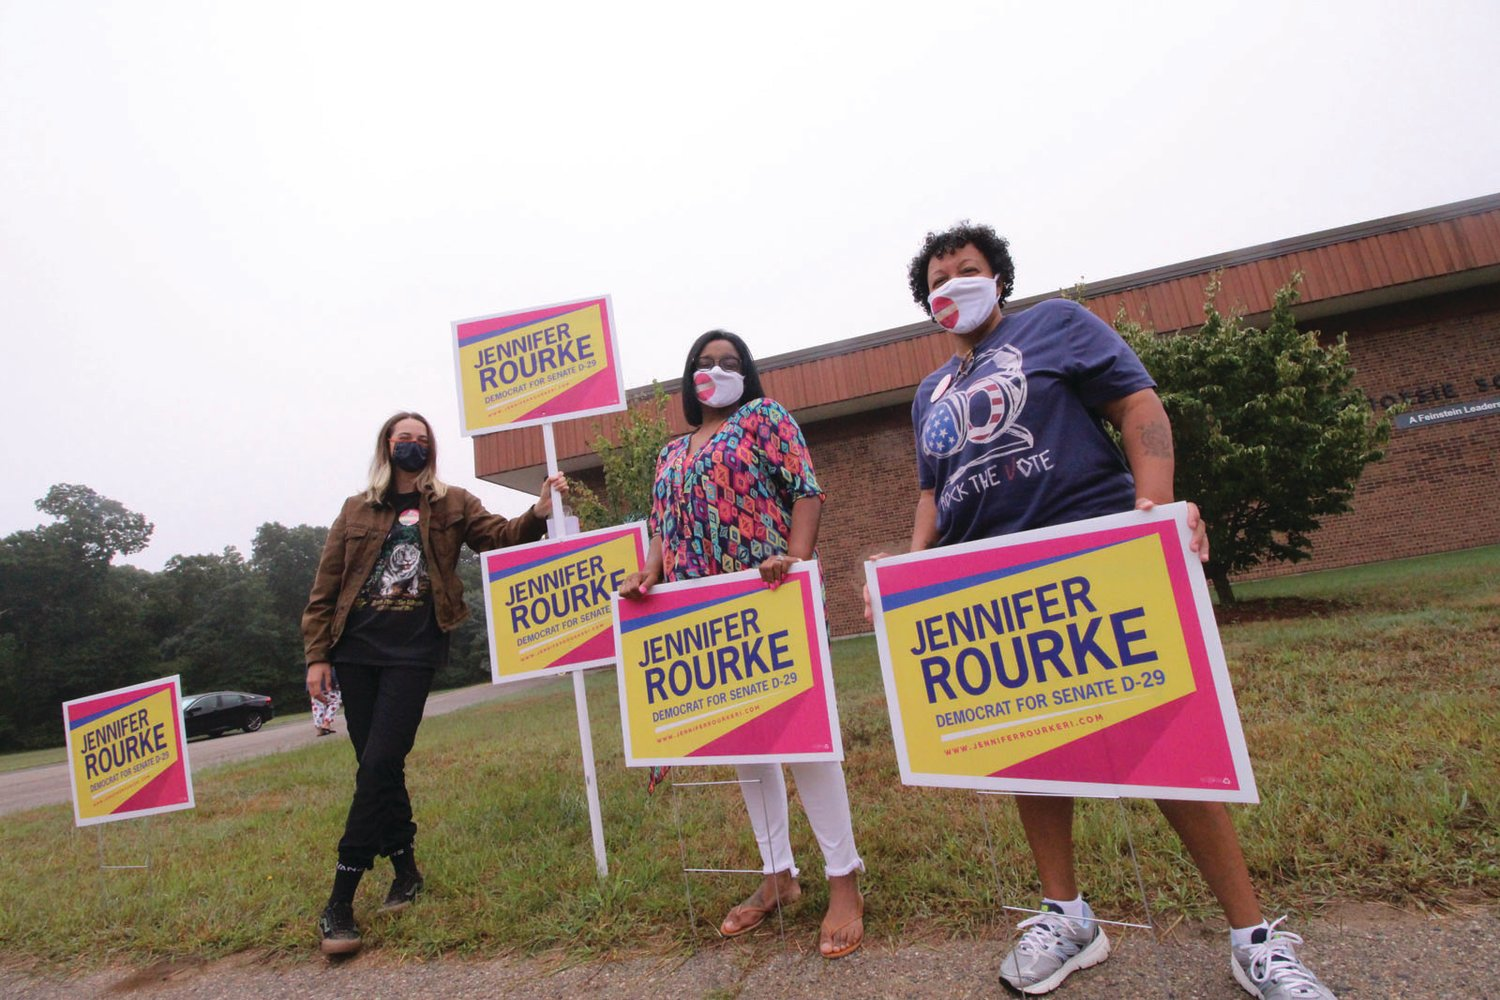 OUT THERE: Senate Dist. 29 candidate Jennifer Rourke, center, is flanked by supporters Madison Esmond and Chris Varon at the Hoxsie School poll.